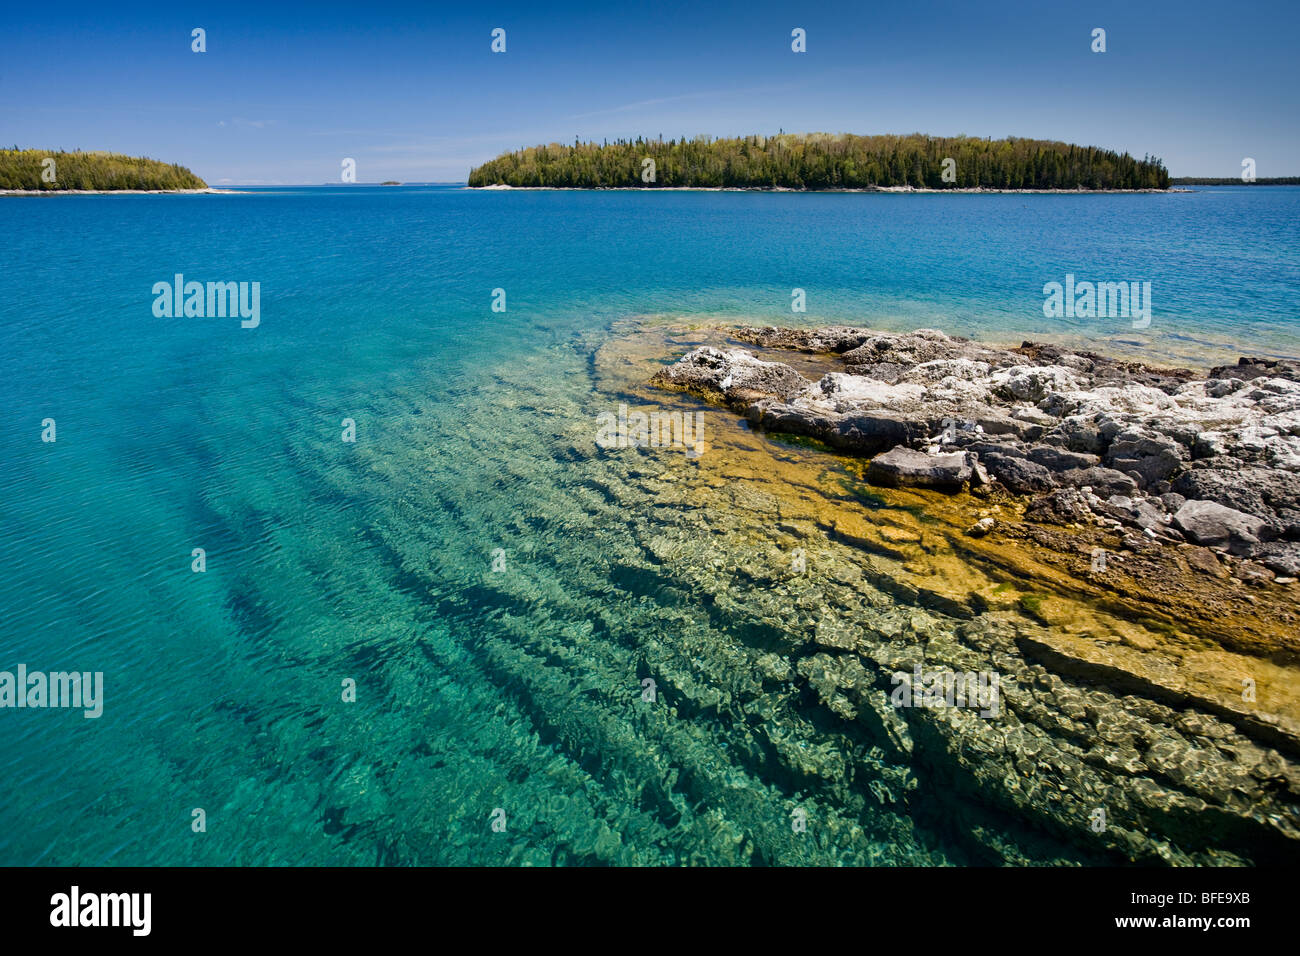 Small island in the Fathom Five National Marine Park, Lake Huron, Ontario, Canada - Stock Image